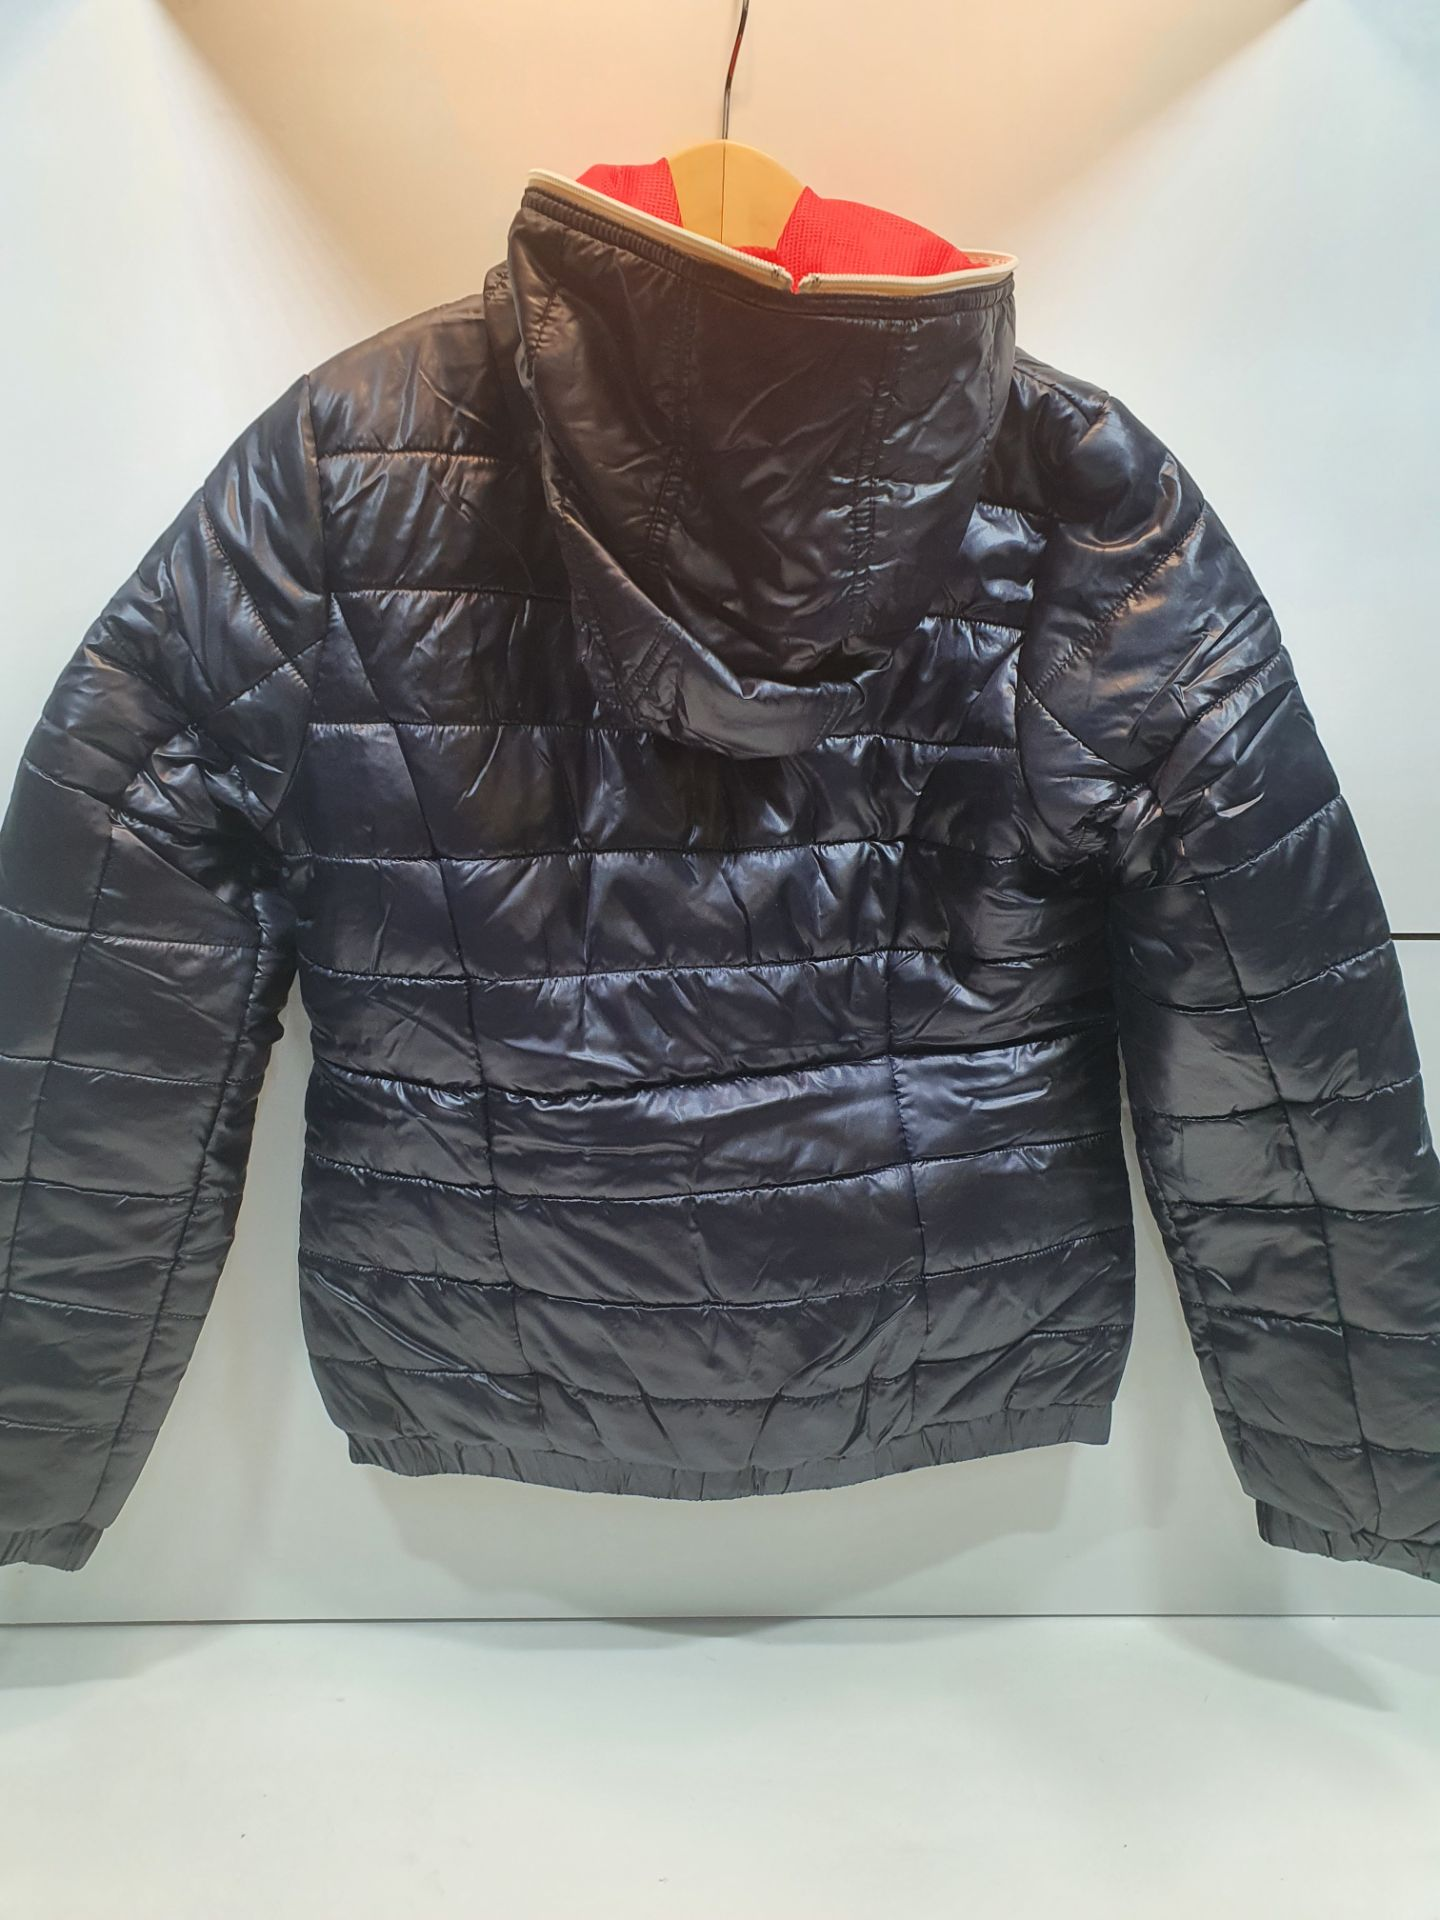 Blend of America Women's Quilted Style Jacket - Image 2 of 2